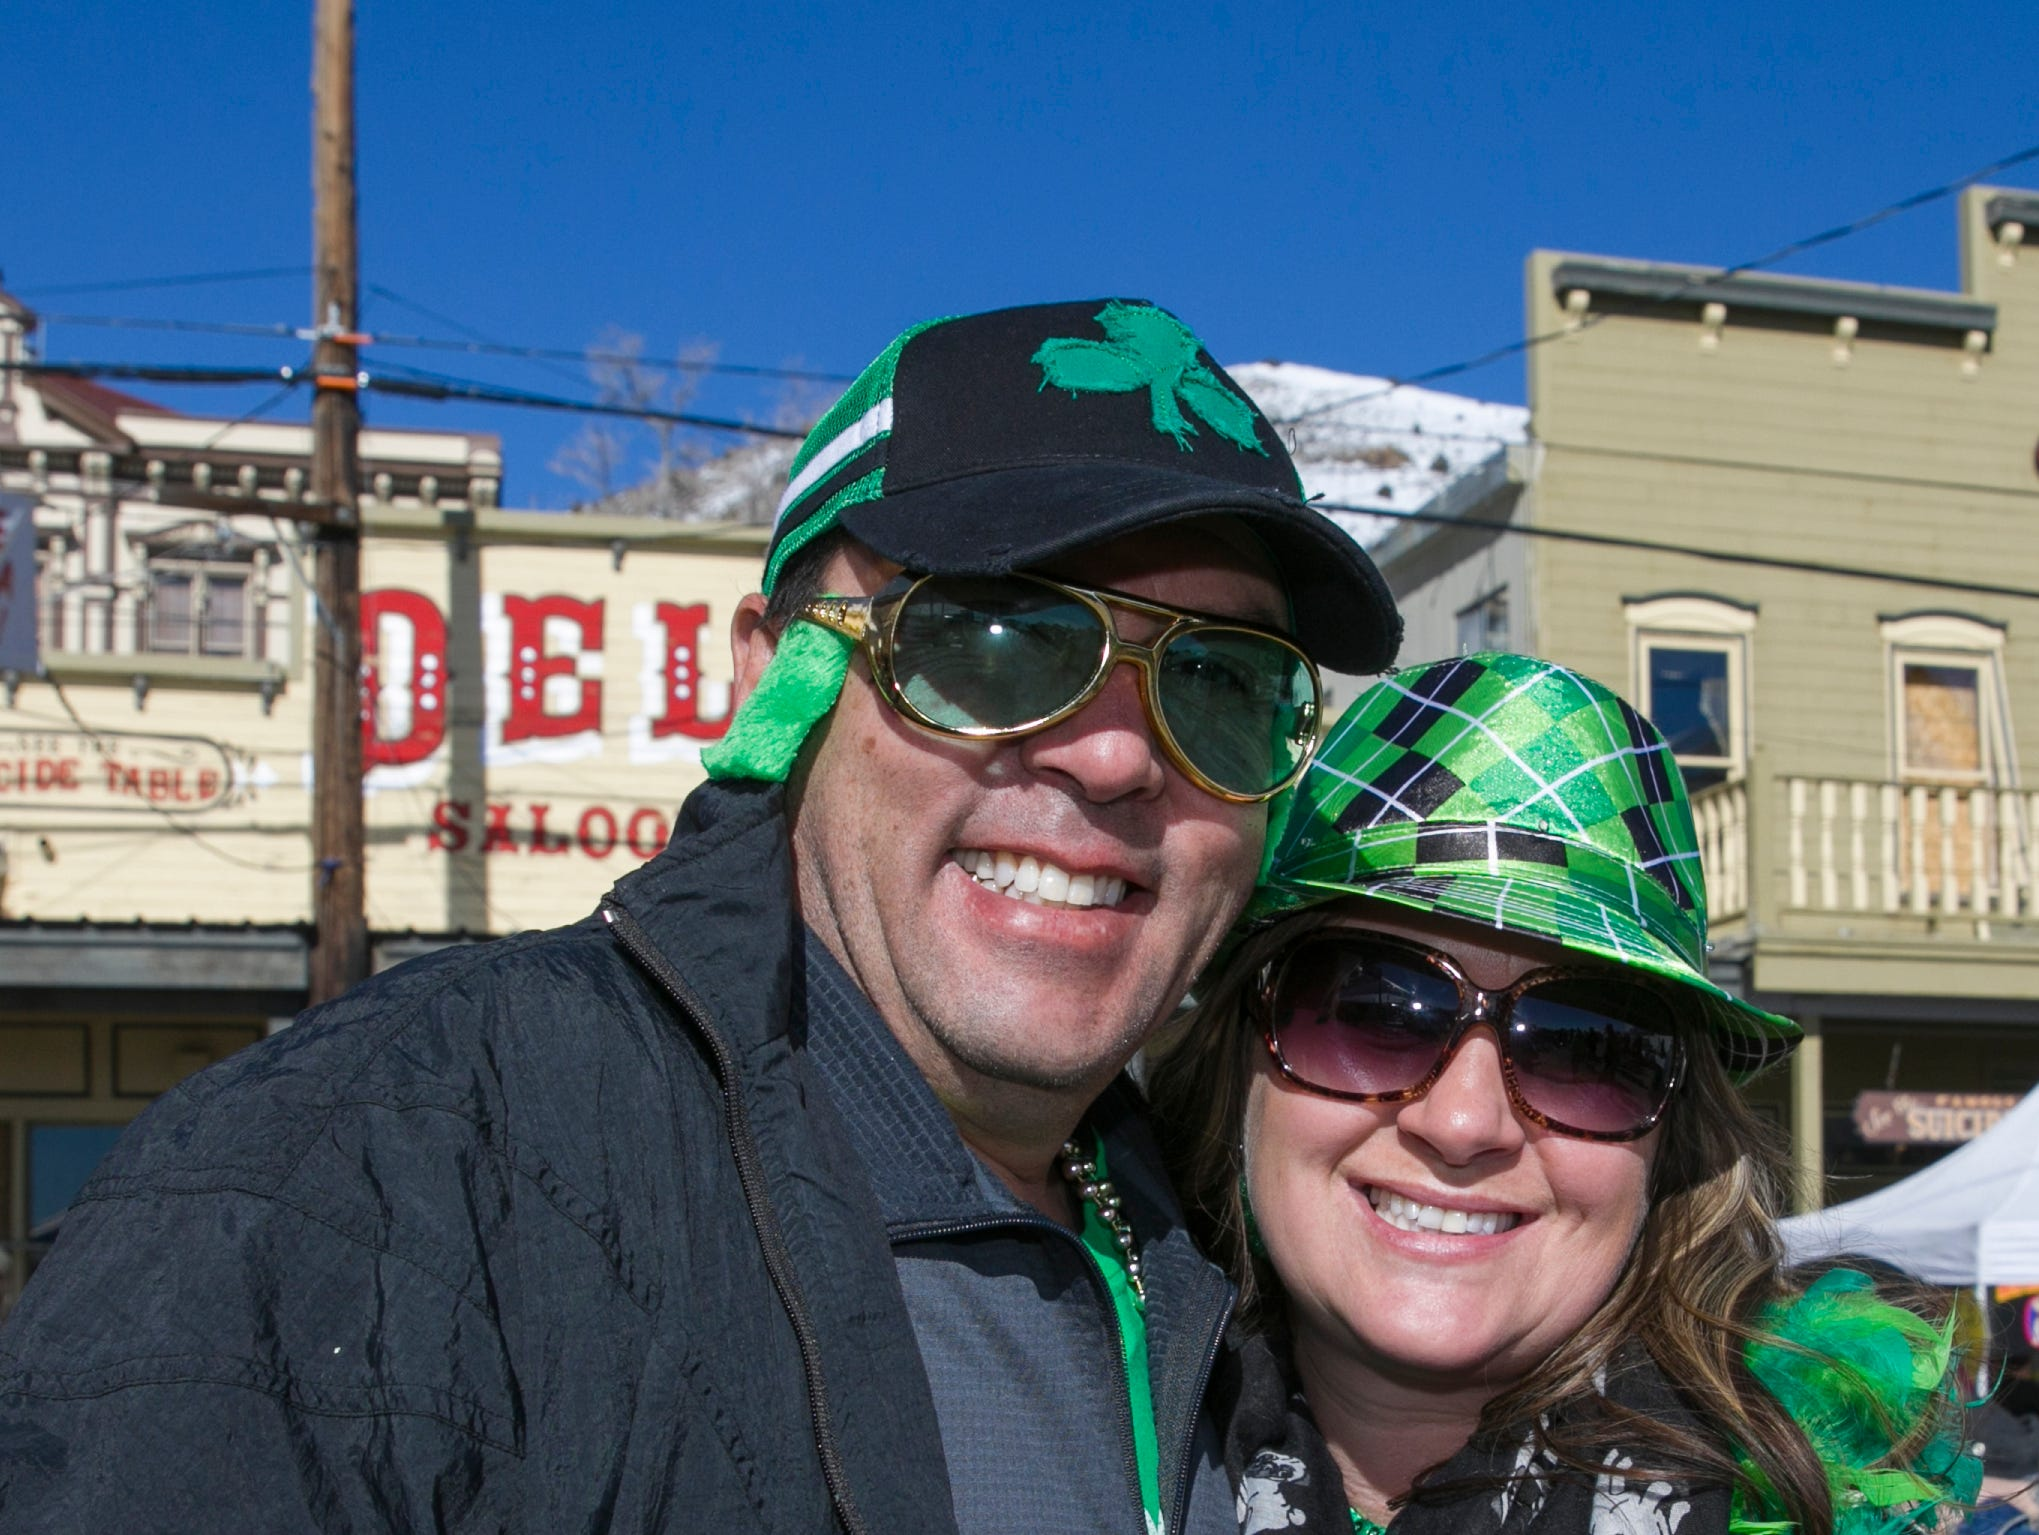 Ciro and Starr during the 28th annual Rocky Mountain Oyster Fry and St. Patrick's Day Parade in Virginia City, Nevada on Saturday March 16, 2019.